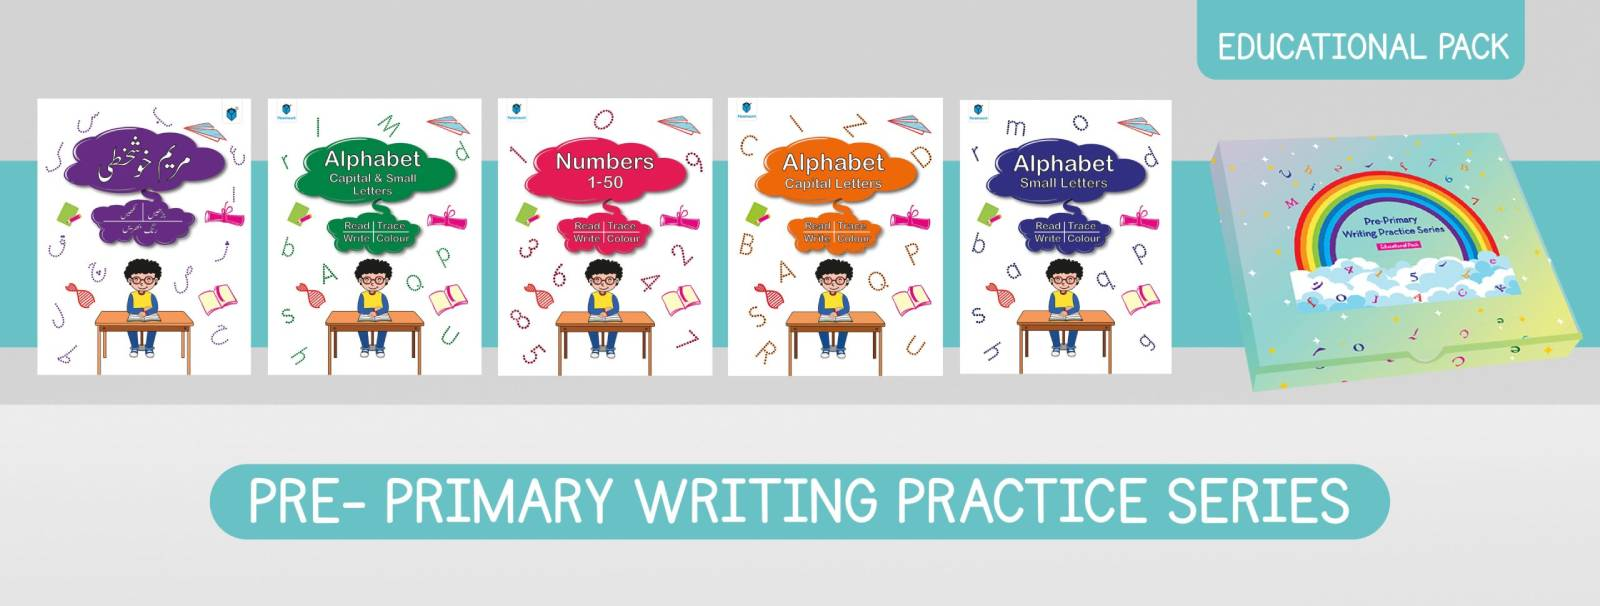 PRE-PRIMARY-WRITING-PRACTICE-SERIES-min-scaled (1)